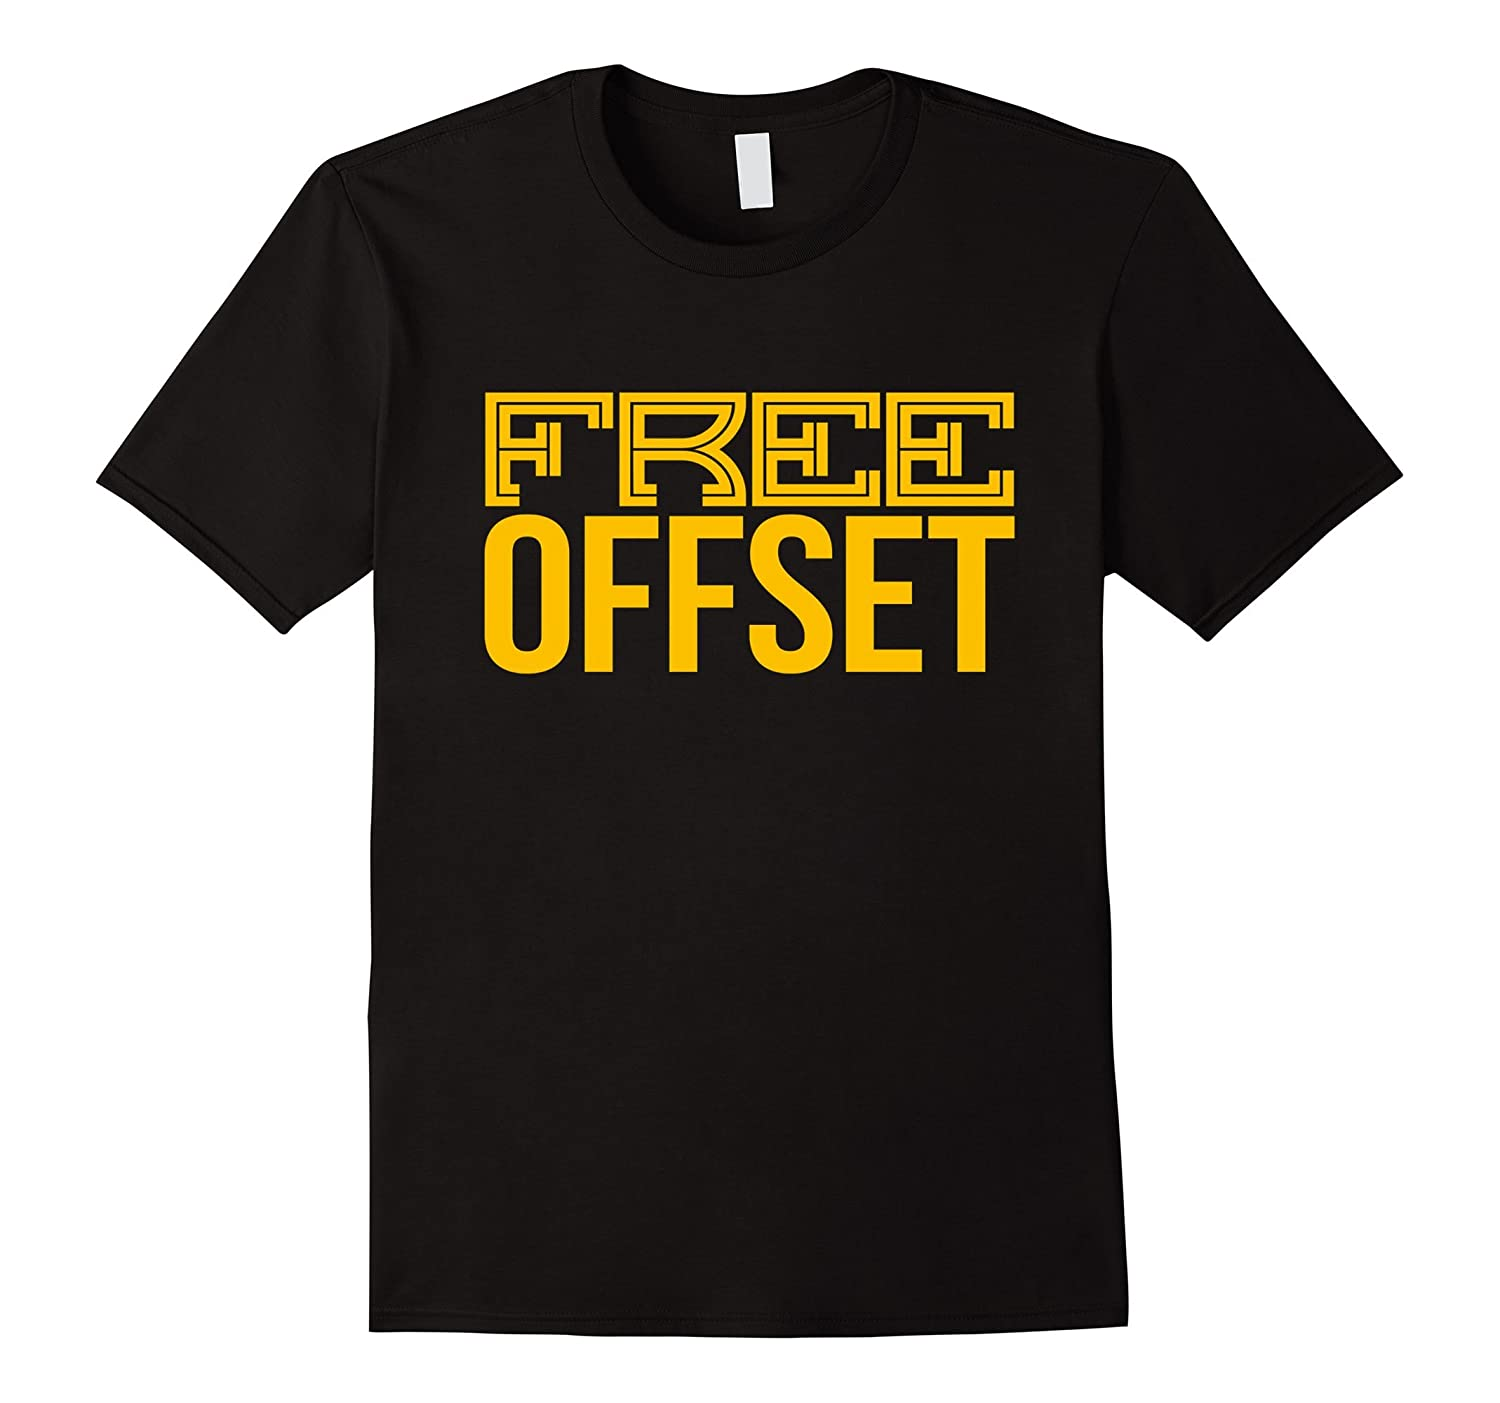 Amazon.com: Funny Gift, Free Offset T-shirts: Clothing